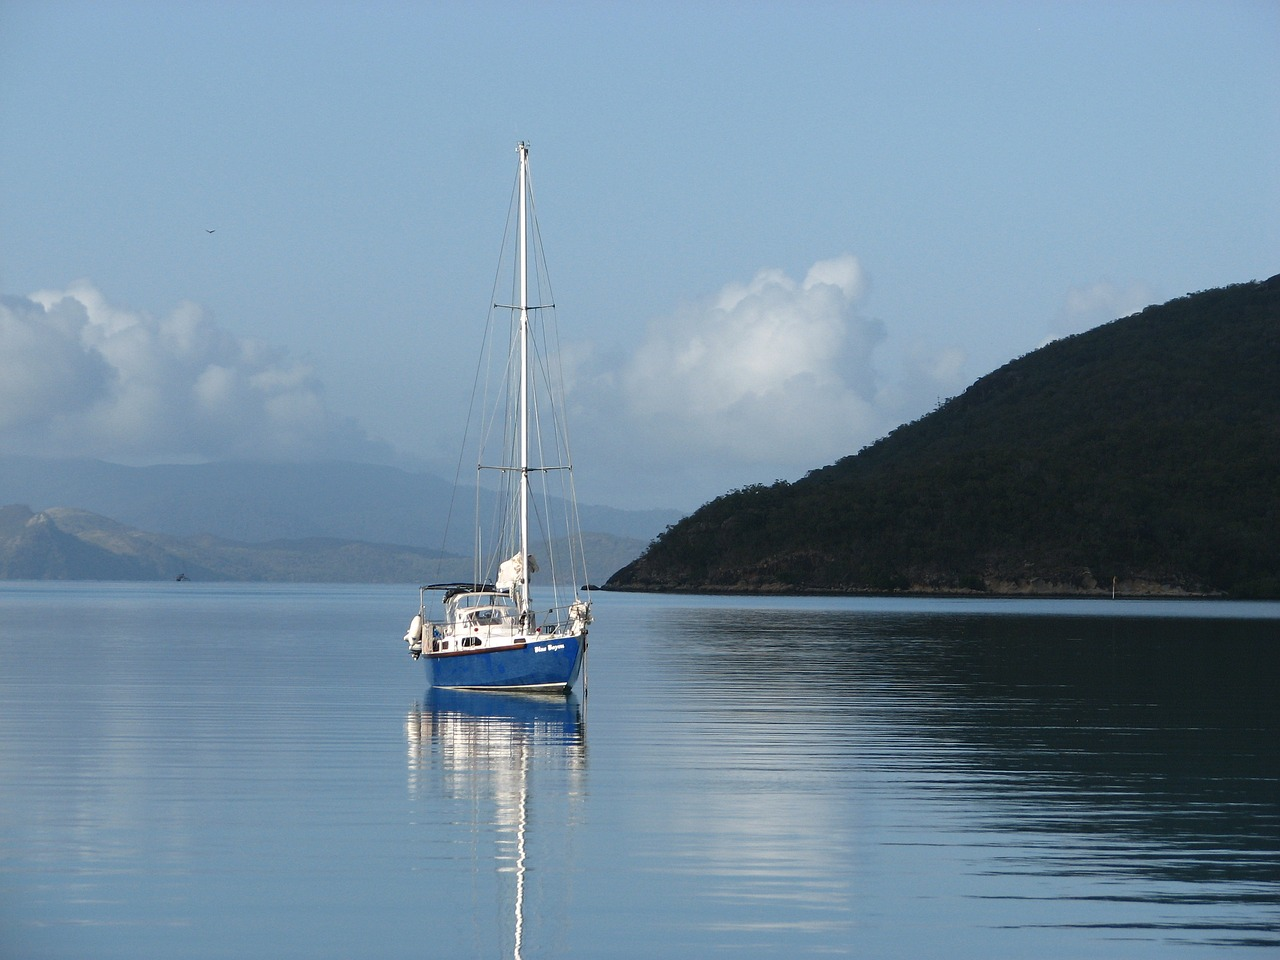 Whitsunday, Australia - read more about the best sailing destinations across the globe in this article. #sailing #sailingdestinations